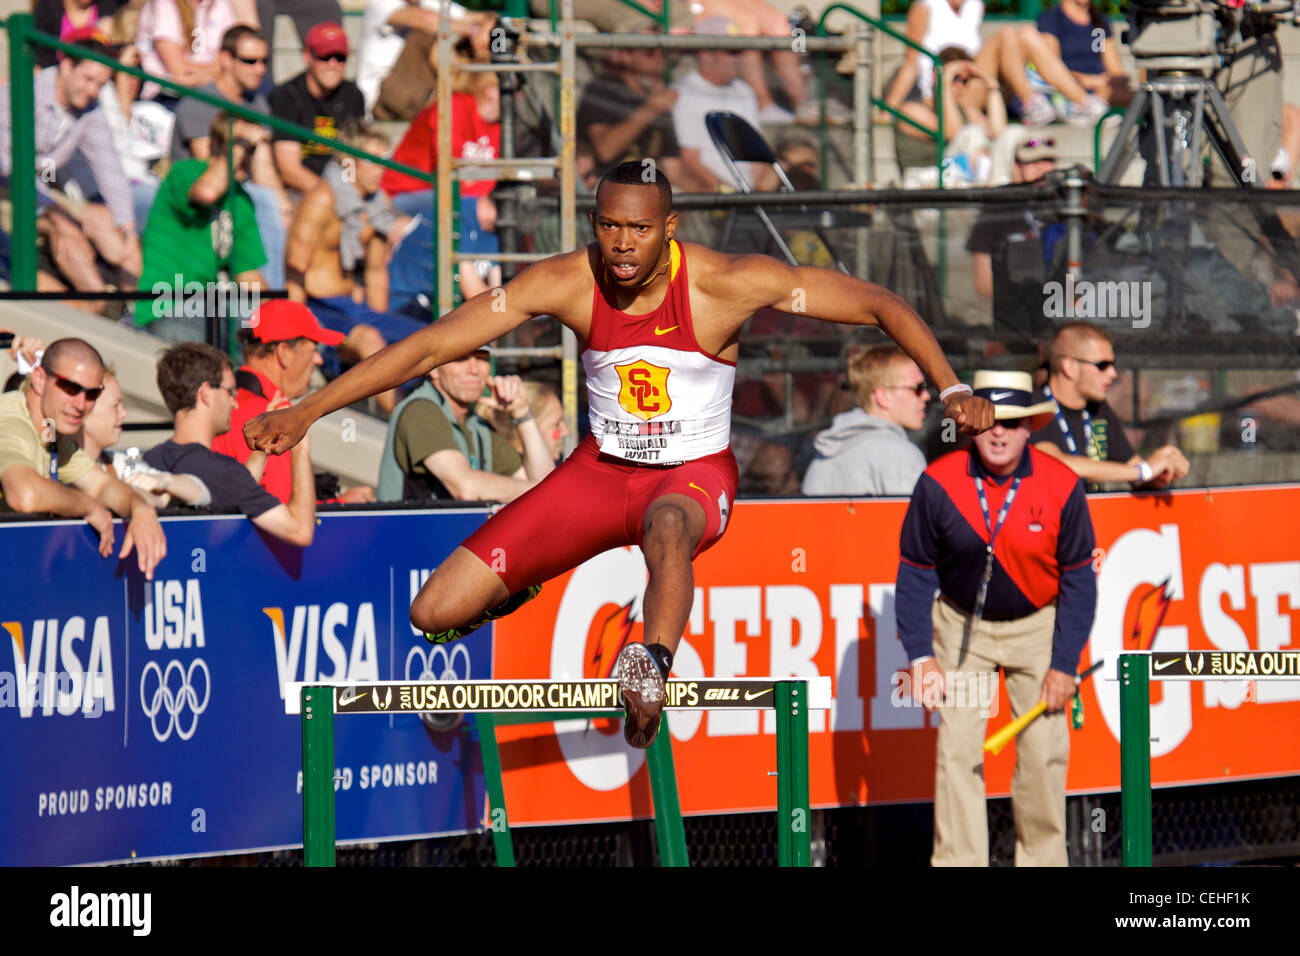 Reginald Wyatt 400m hurdles image taken from the crowd at the 2011 USATF nationals Hayward Field Eugene Oregon - Stock Image